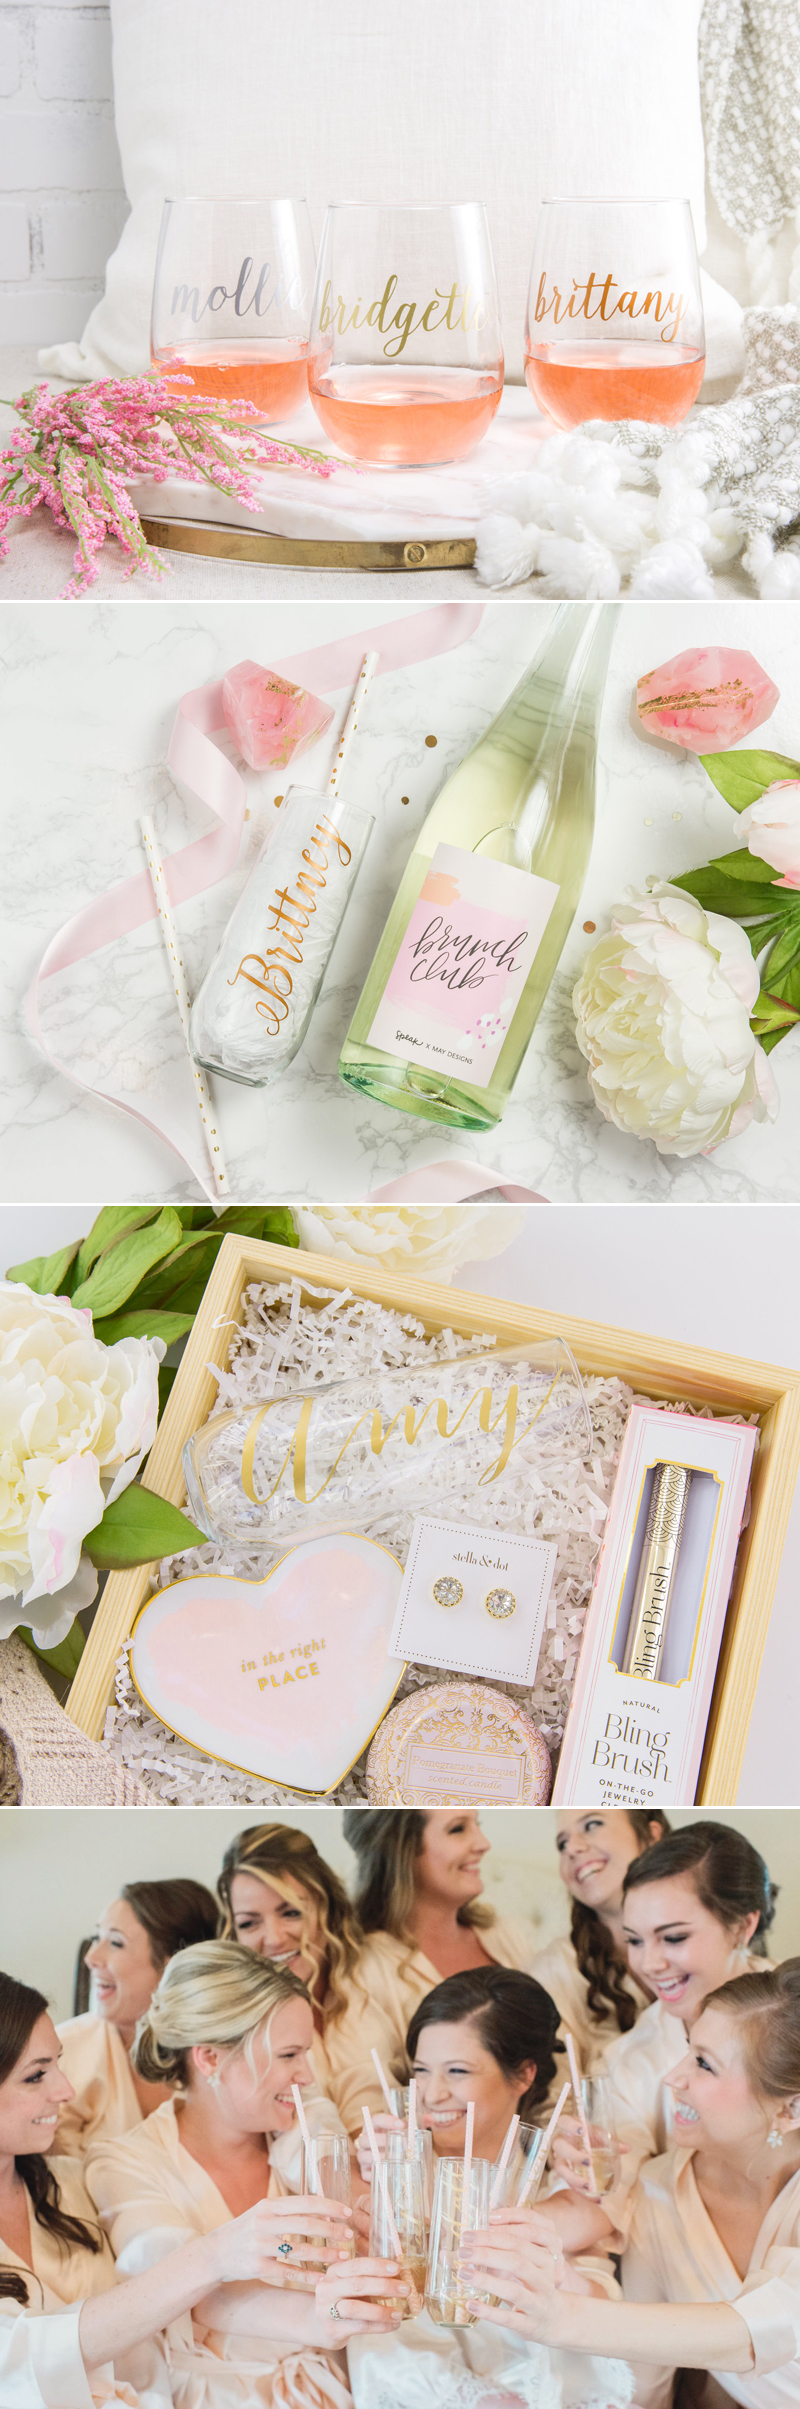 DIY Party06-NaturallyChicGifts